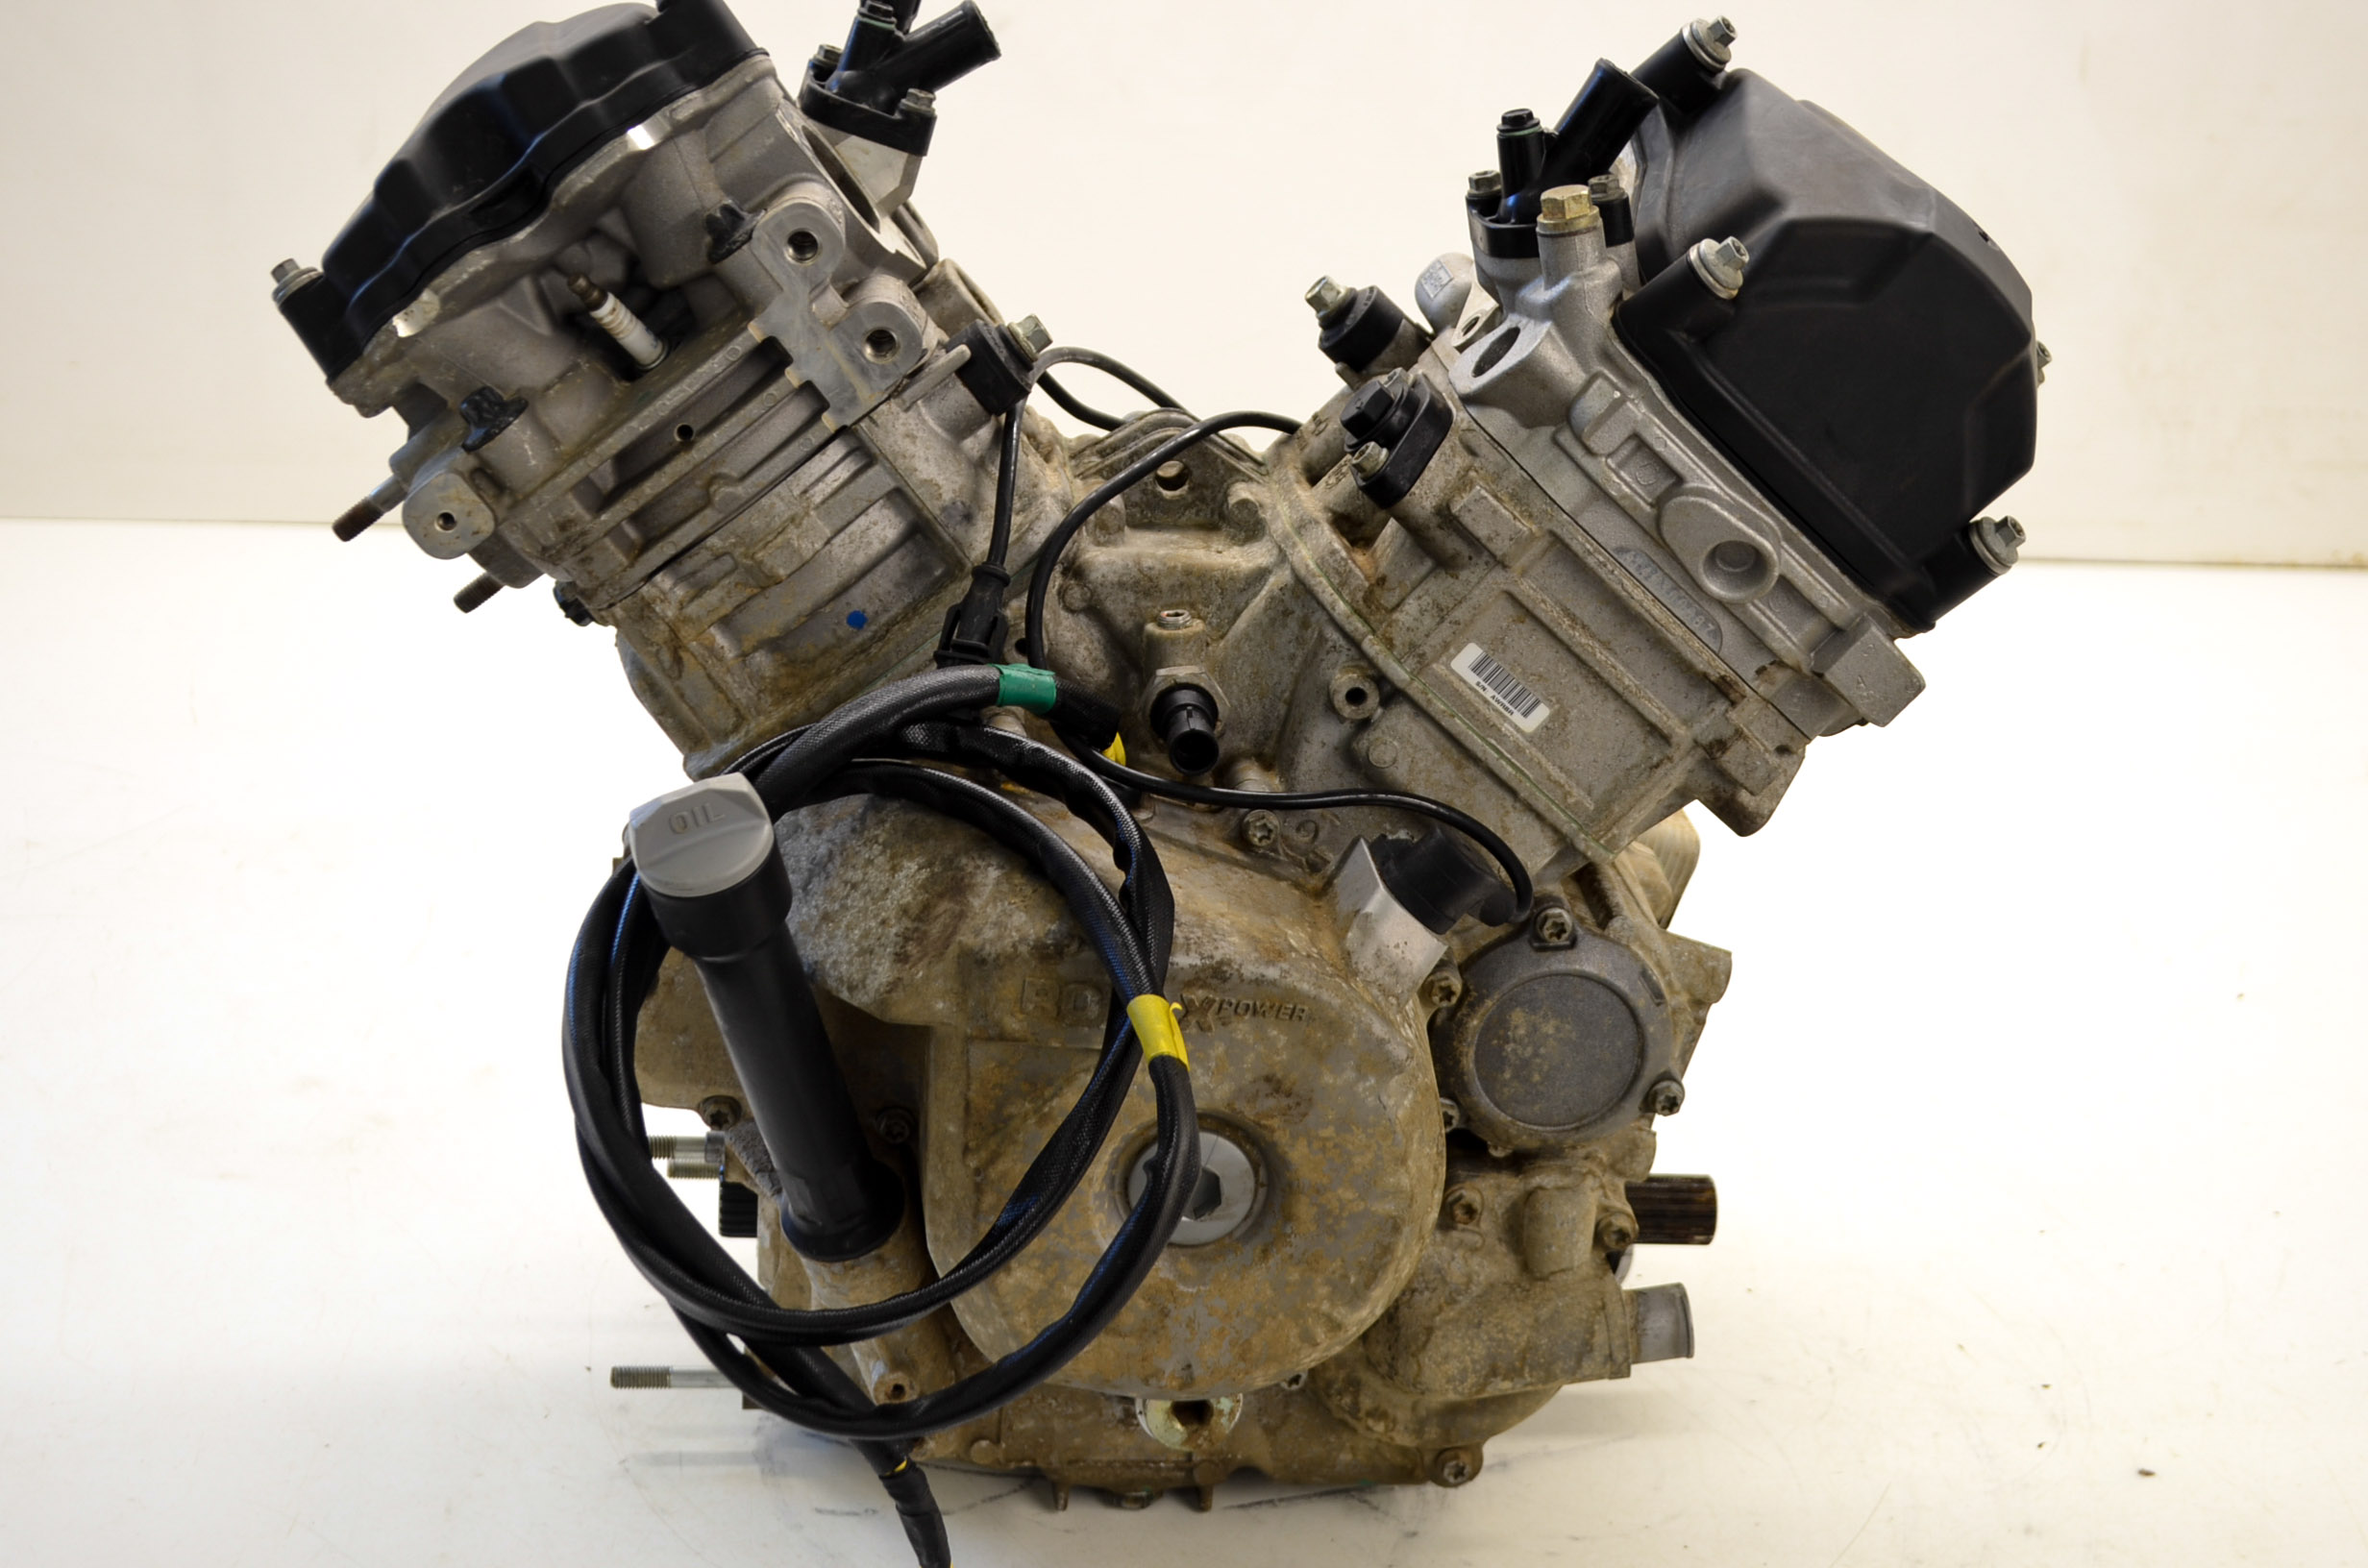 Details about 14 Can-Am Maverick 1000 4x4 XRS Complete Engine Motor